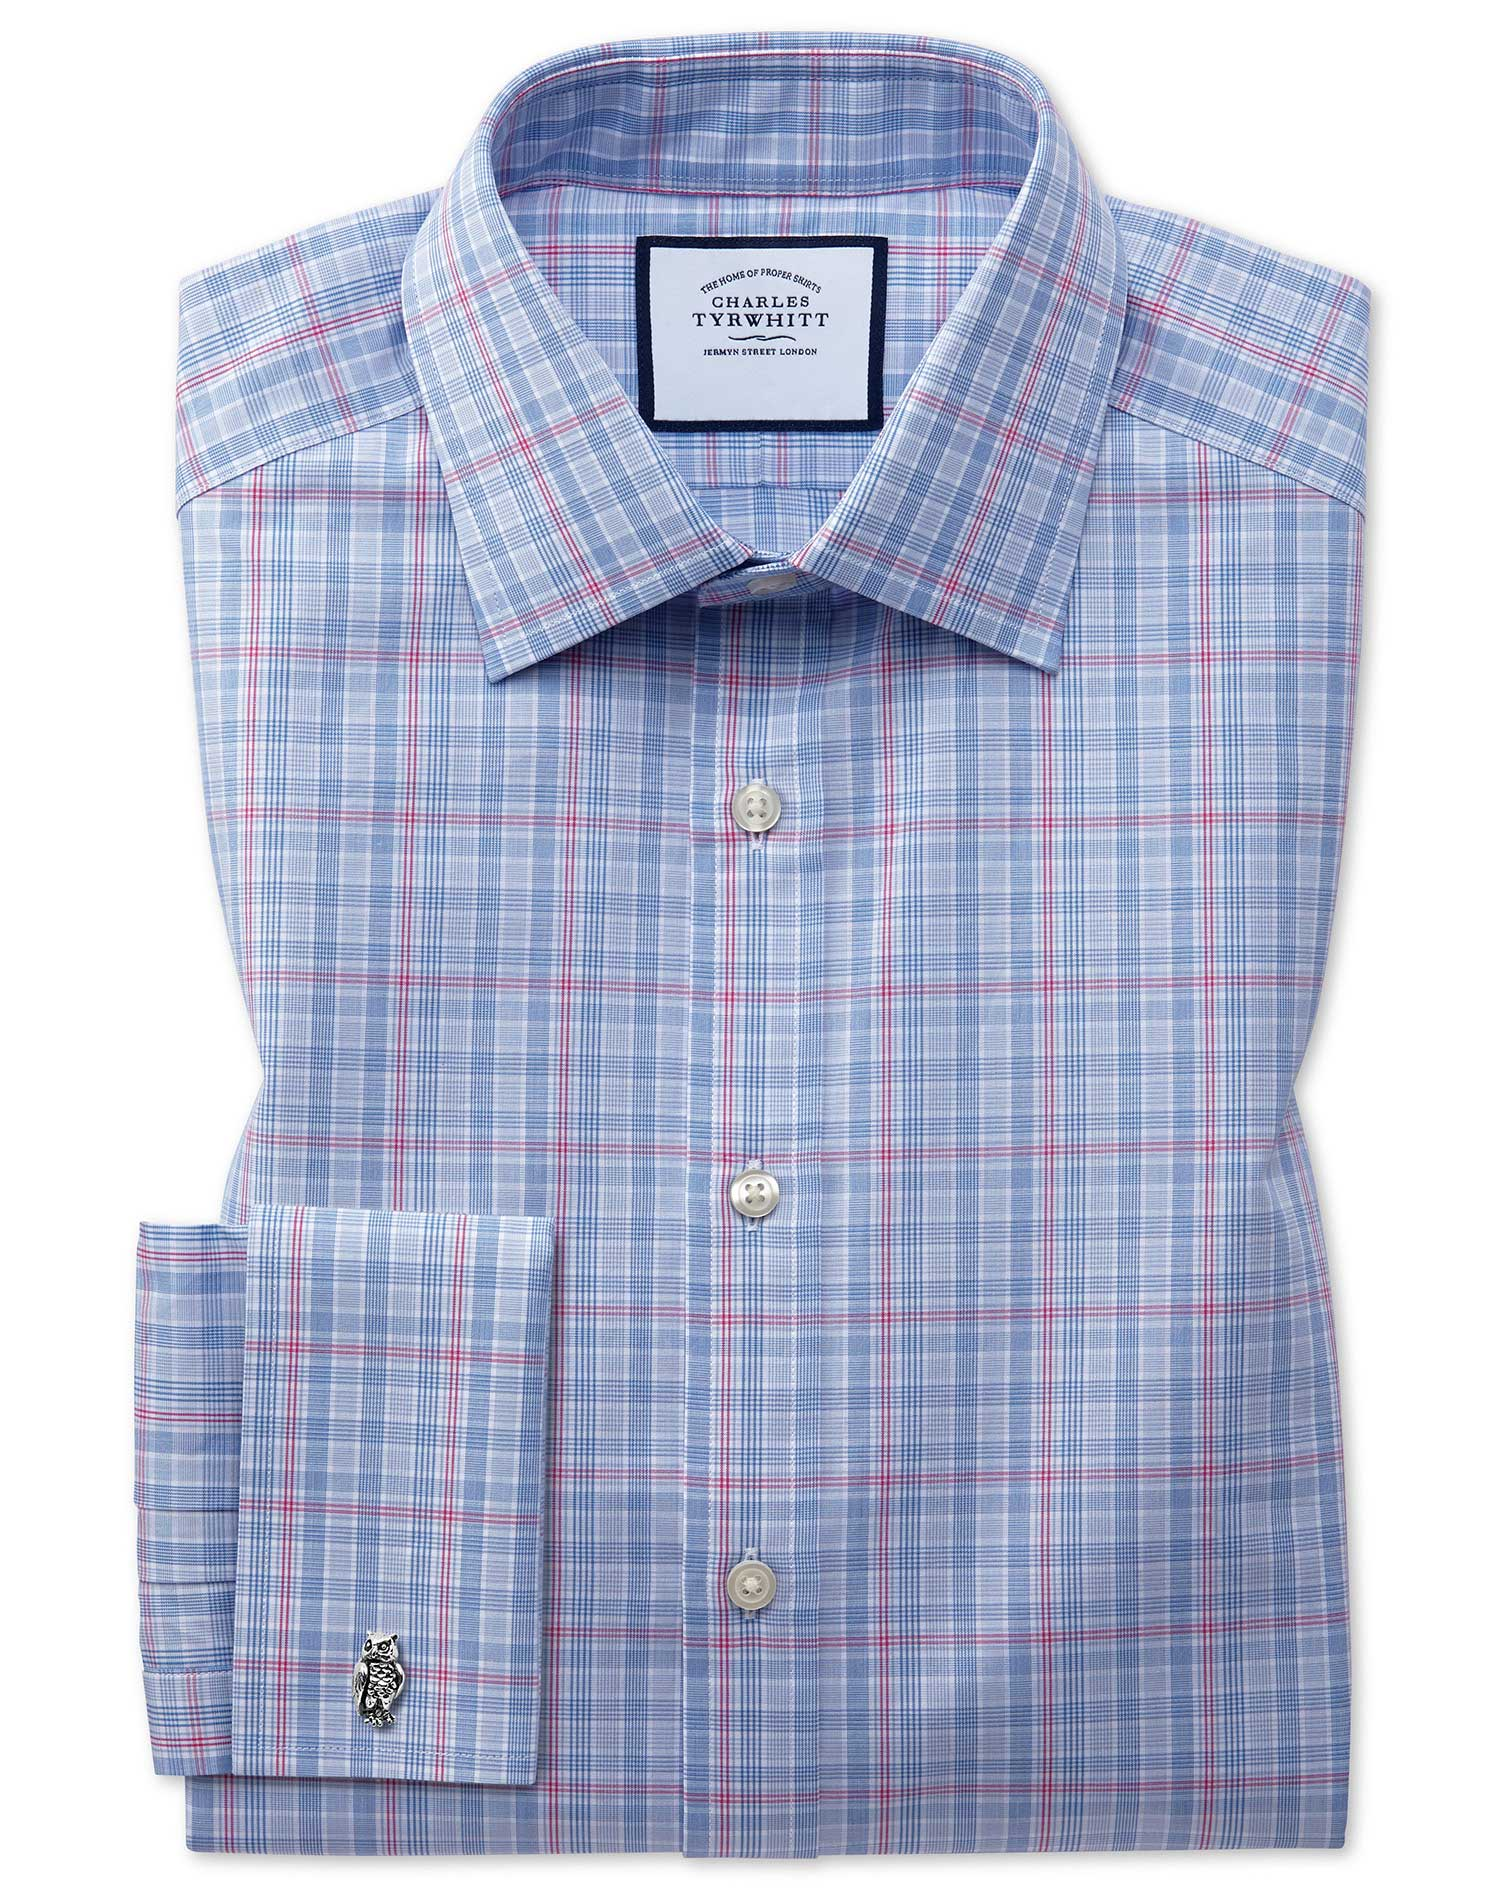 Classic Fit Blue and Pink Prince Of Wales Check Cotton Formal Shirt Single Cuff Size 17/36 by Charle